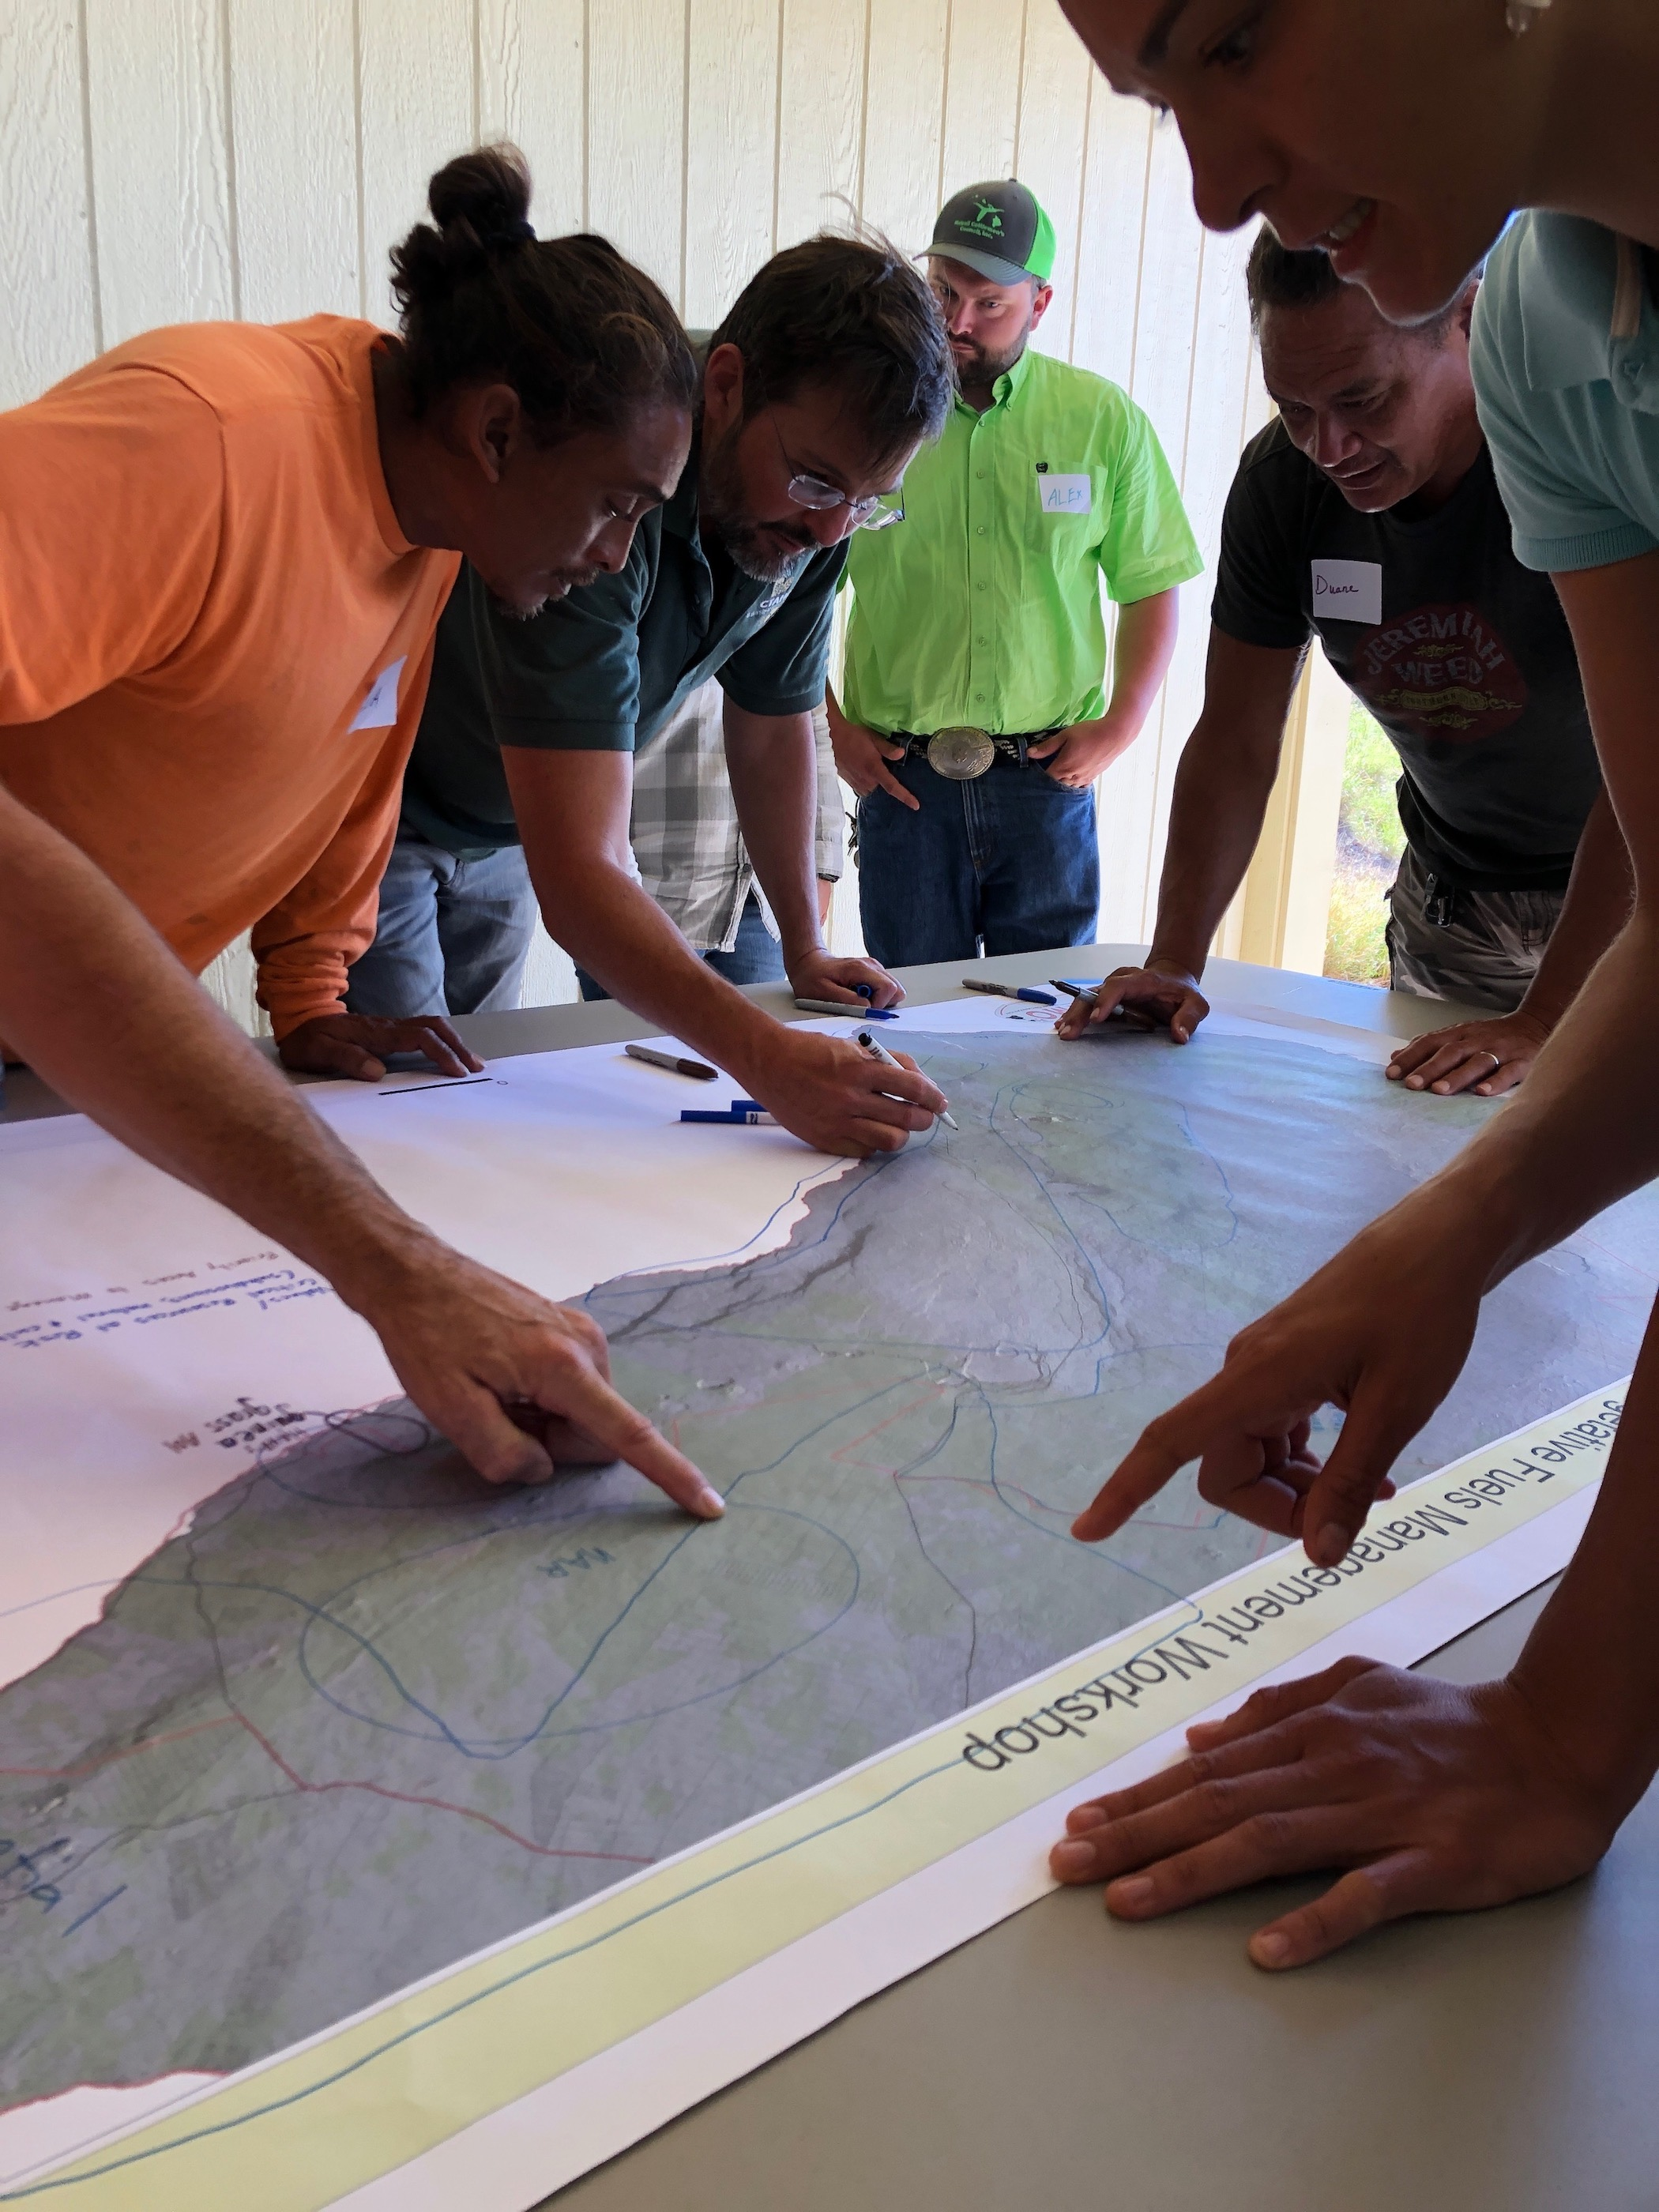 Hawaii Island Kailapa Vegetative Fuels Management Collaborative Action Planning Workshop_2_26_2019_38.jpg